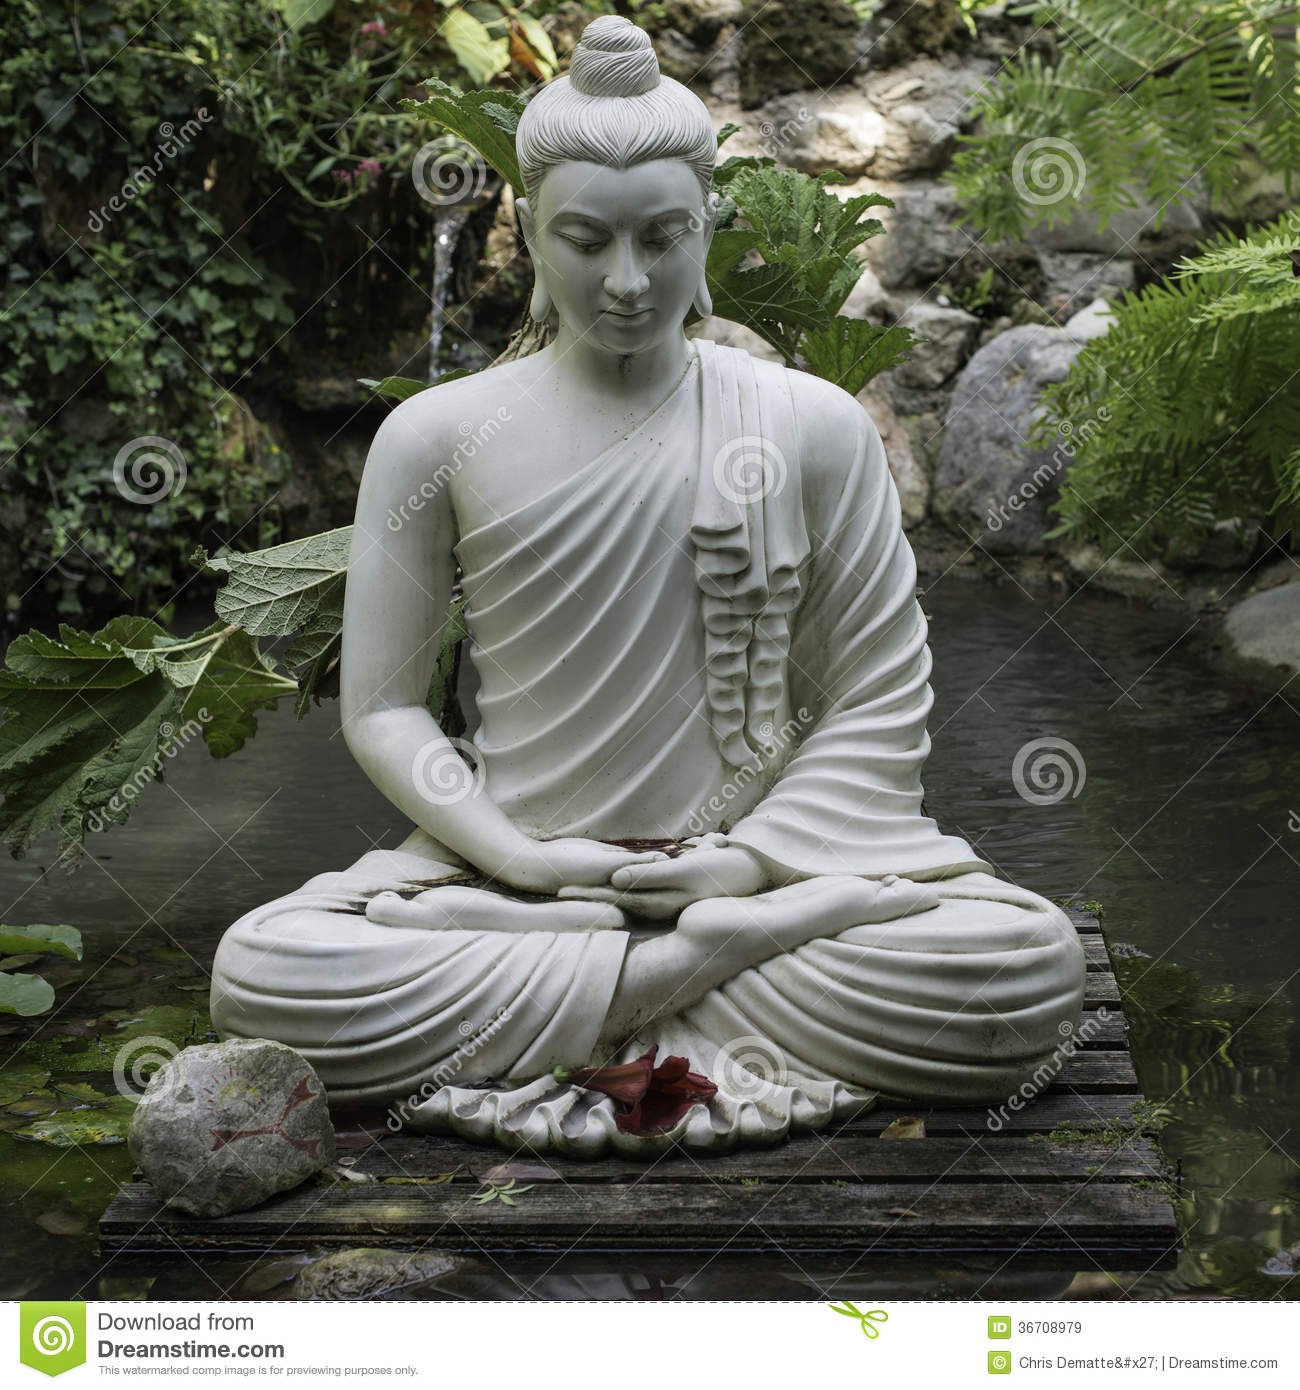 zen stock image image of religion nature garden statue 36708979. Black Bedroom Furniture Sets. Home Design Ideas